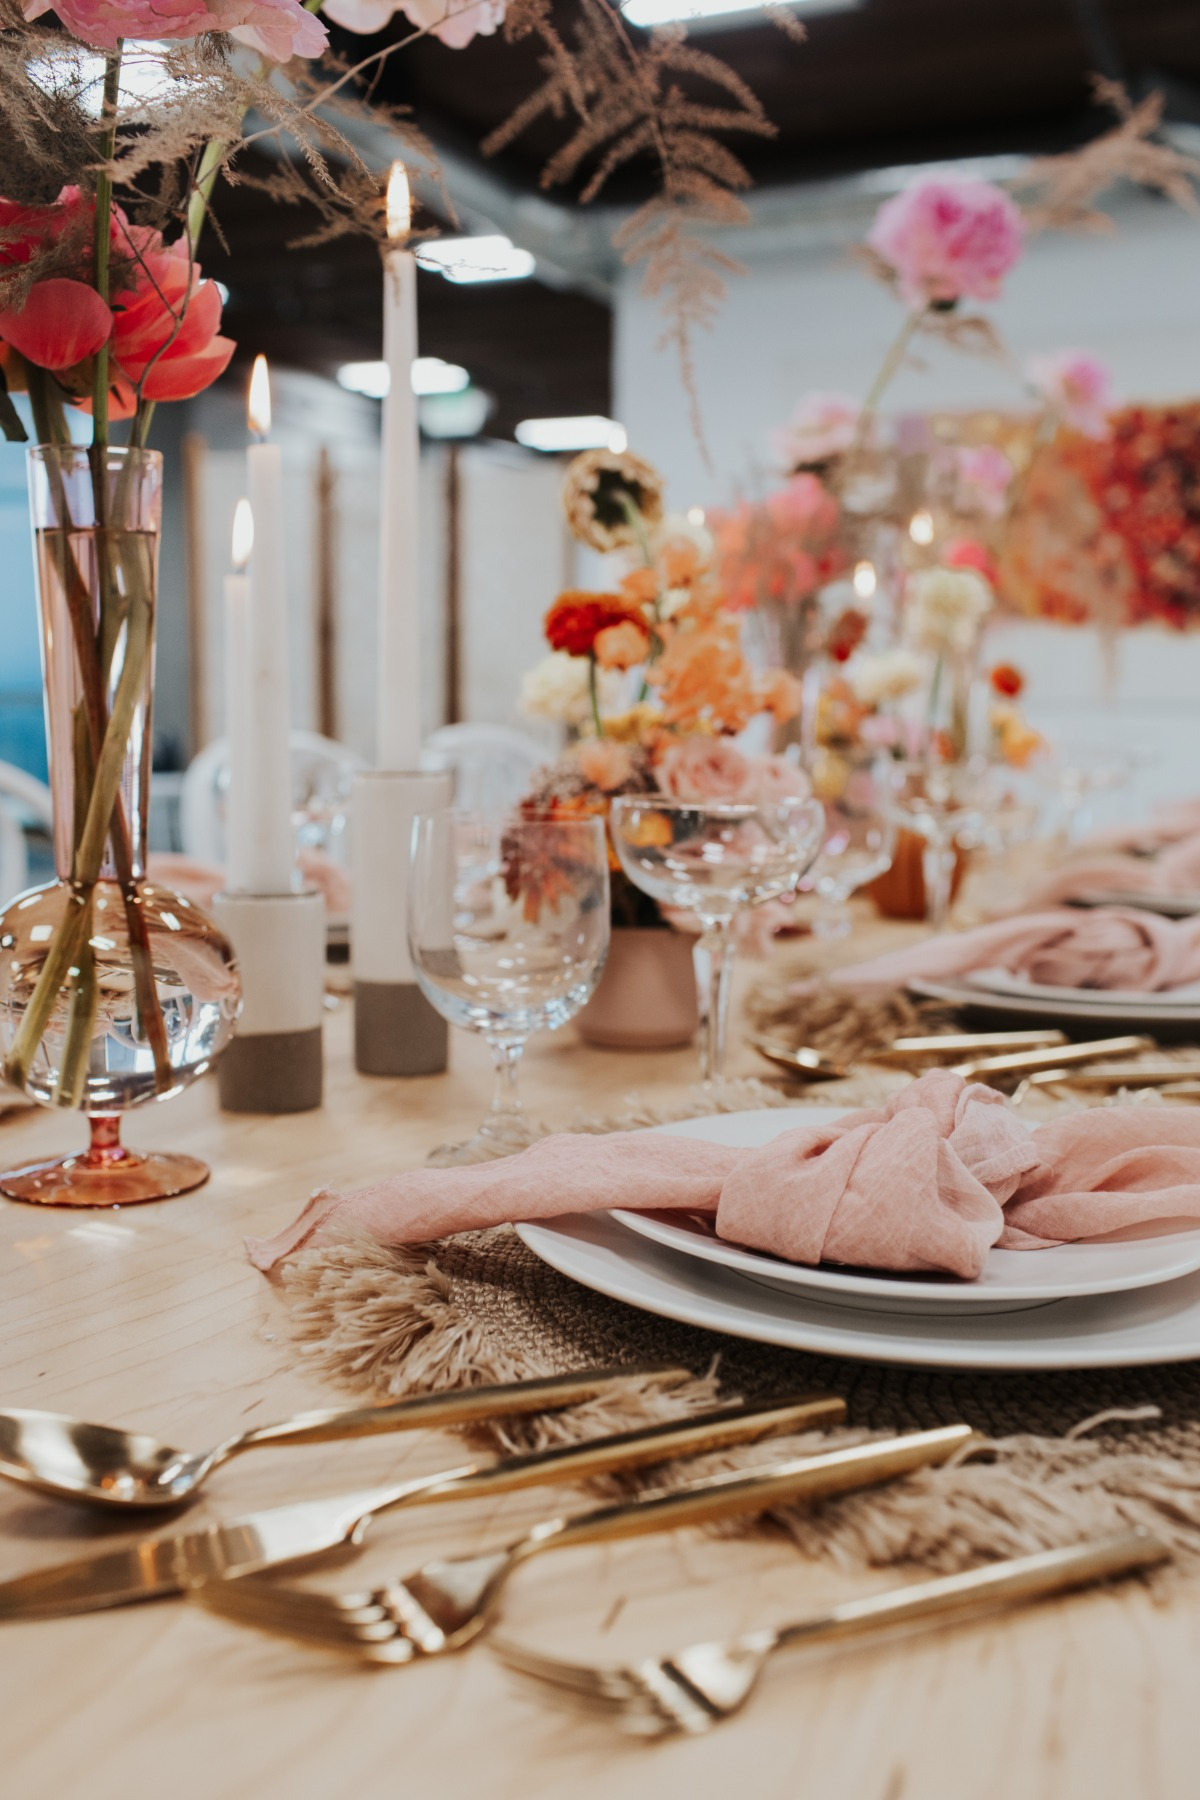 5 Design Tips to Style a Summer Tabletop